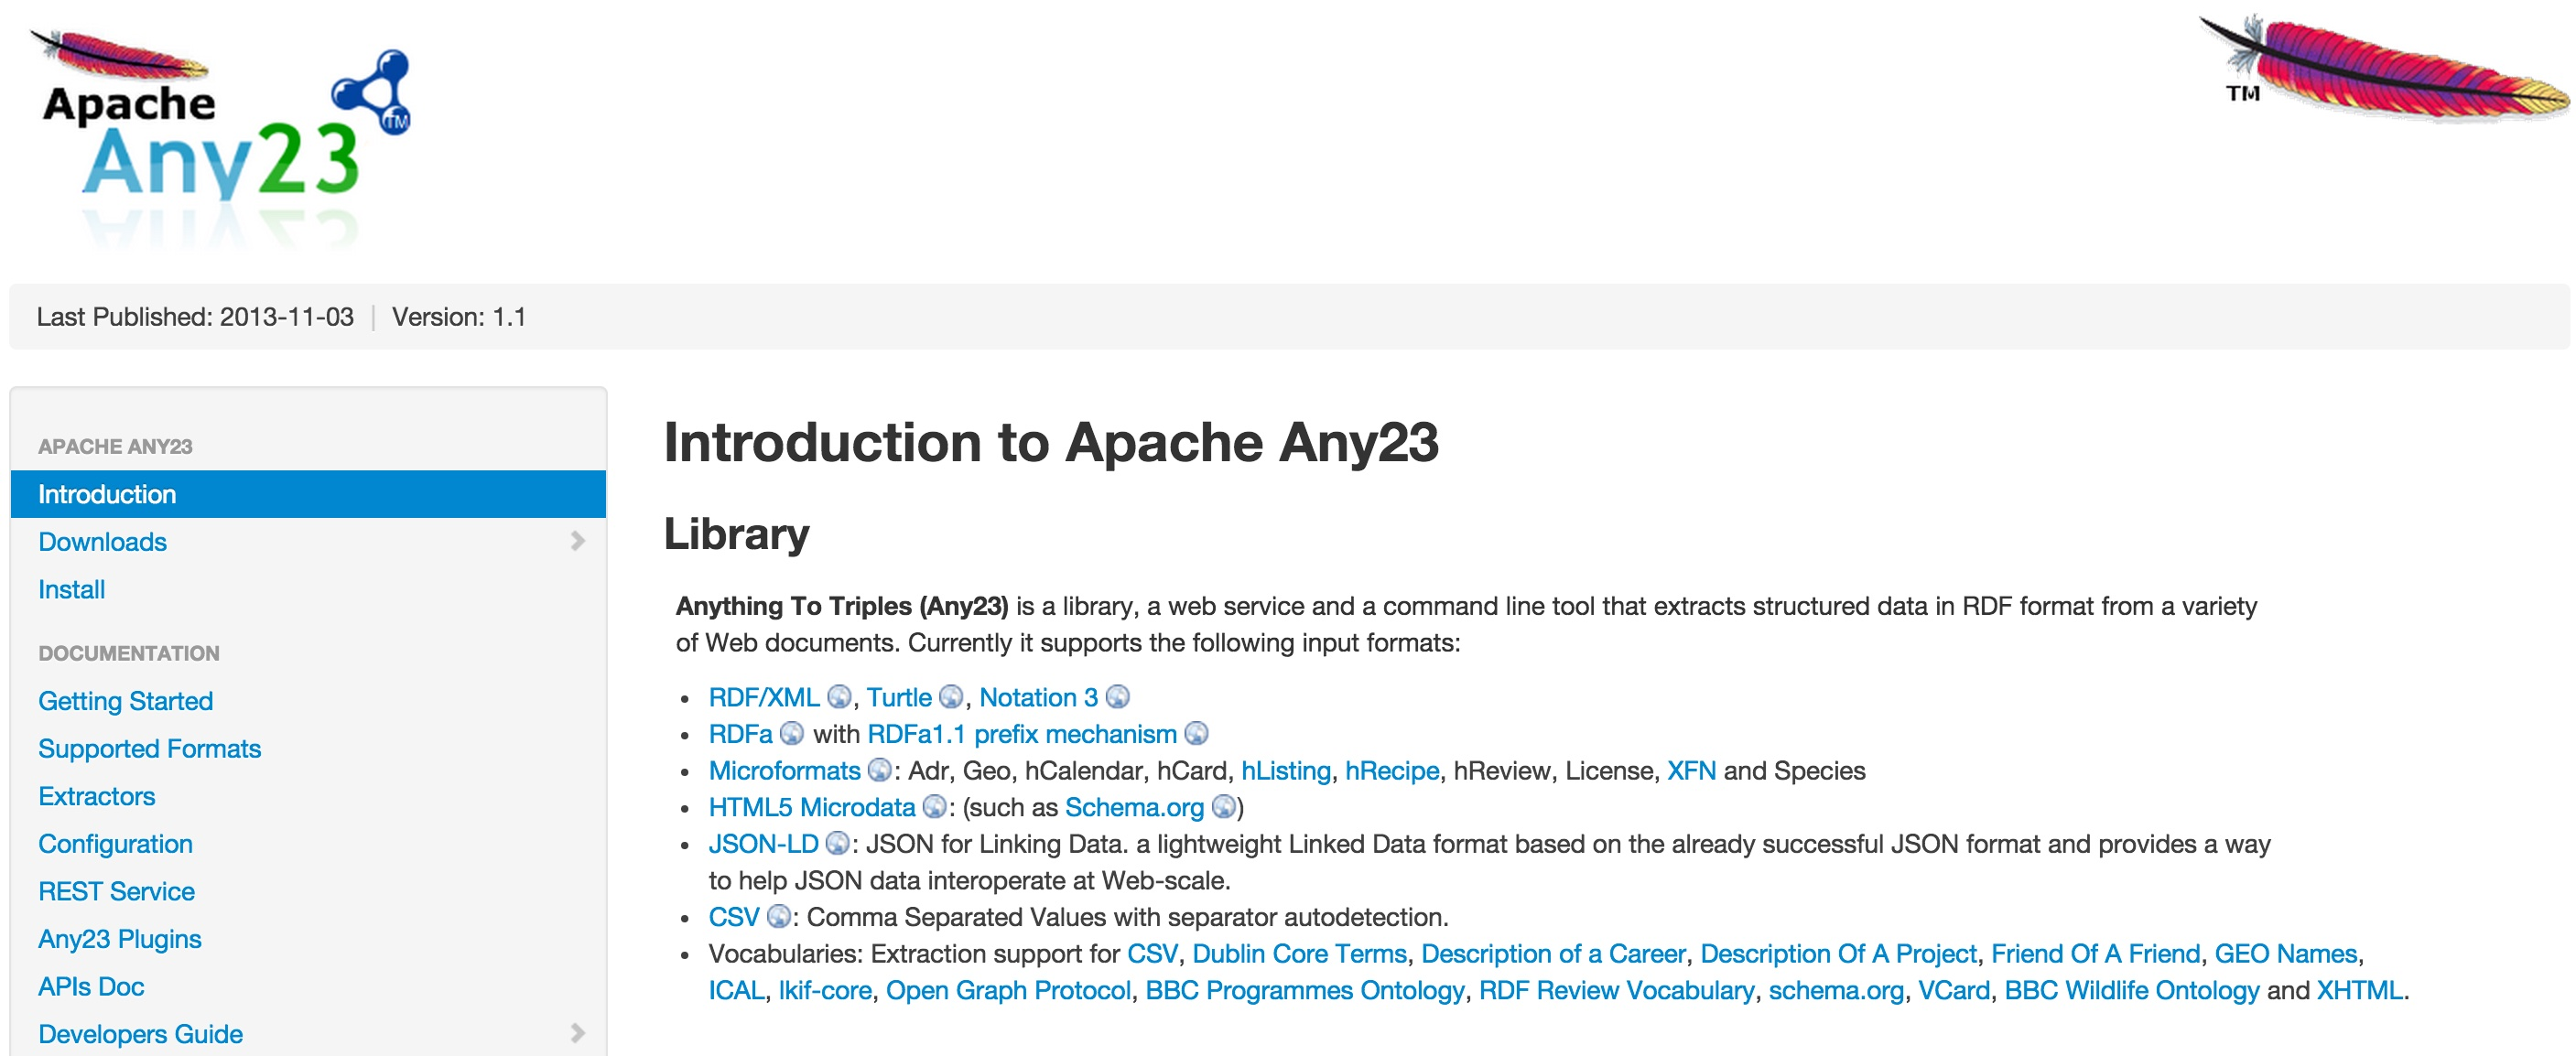 Apache Any23 Screenshot